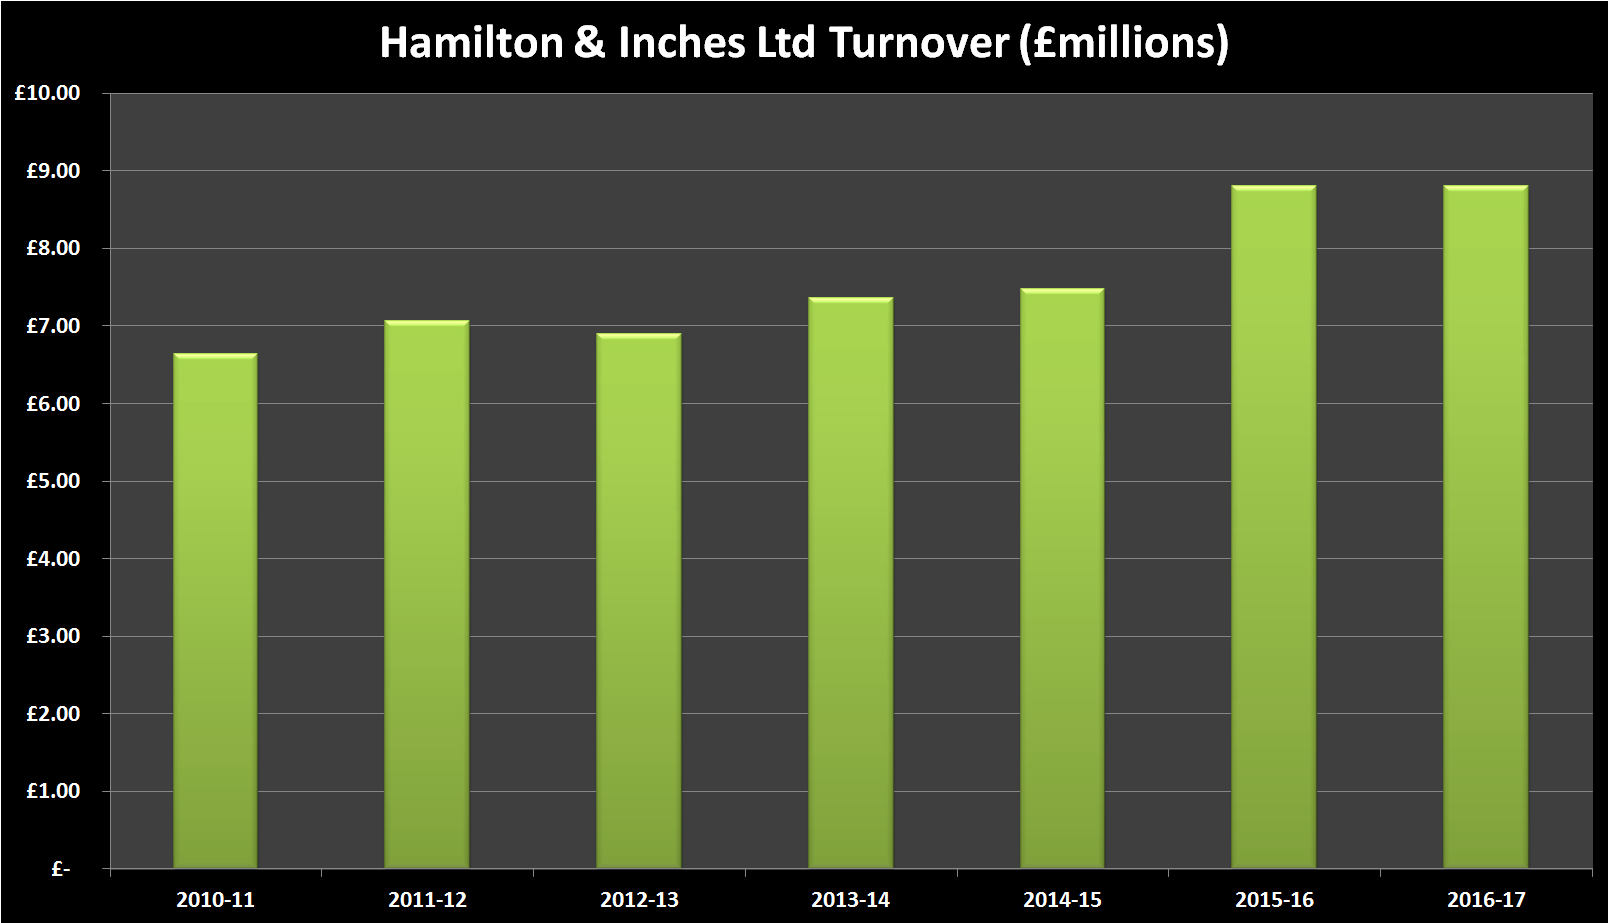 Hamilton & Inches Financial History - Turnover